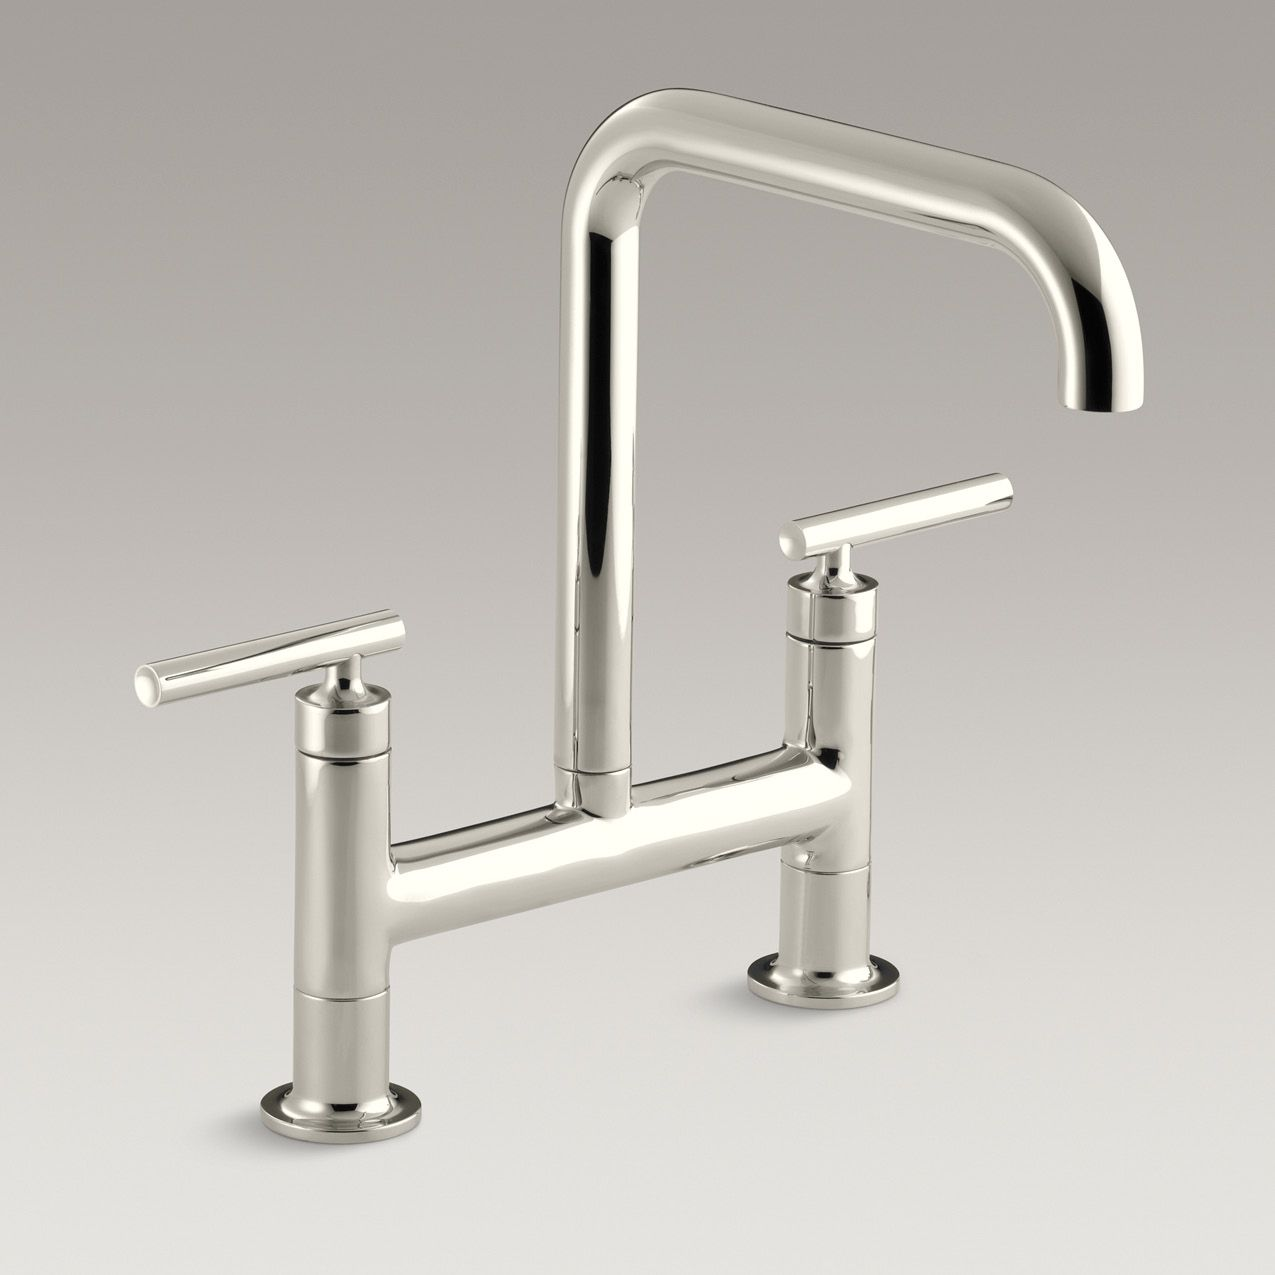 Kohler Purist Kitchen Faucet | The Purist Kitchen Faucet Is An Elegant Addition To Any Kitchen